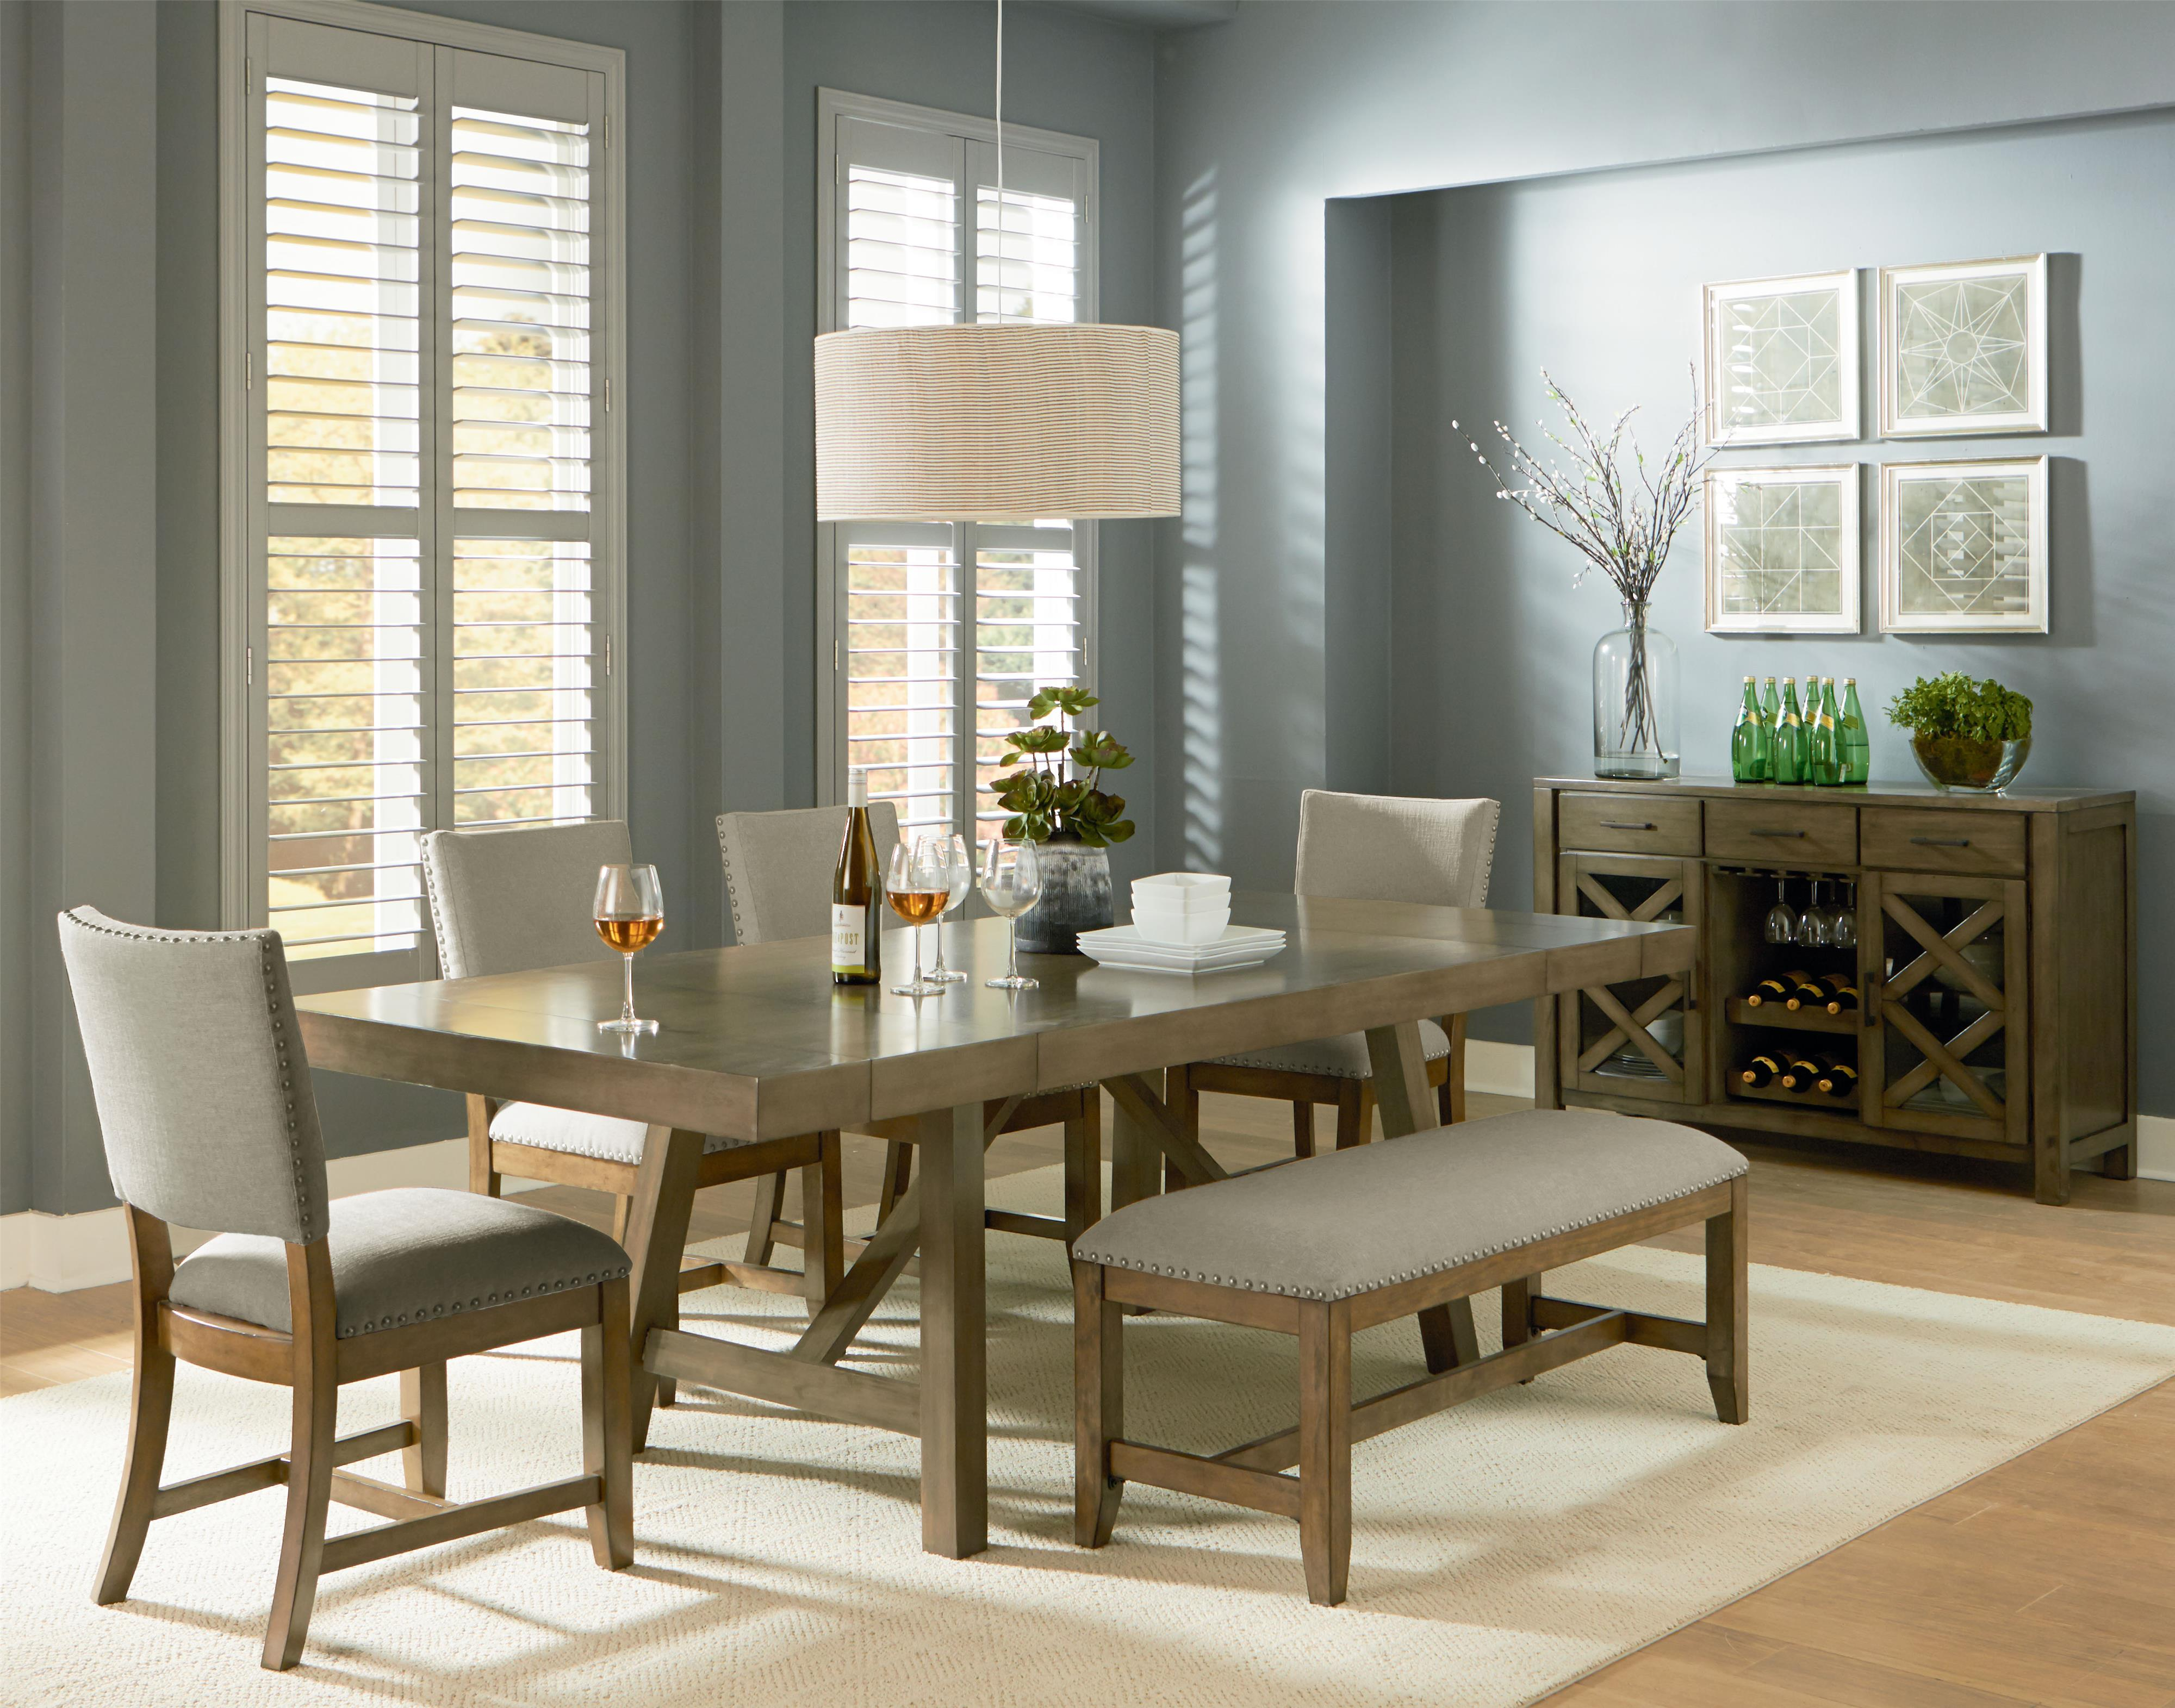 About Casual Dining Rooms On Pinterest Dining Rooms Rooms Furniture